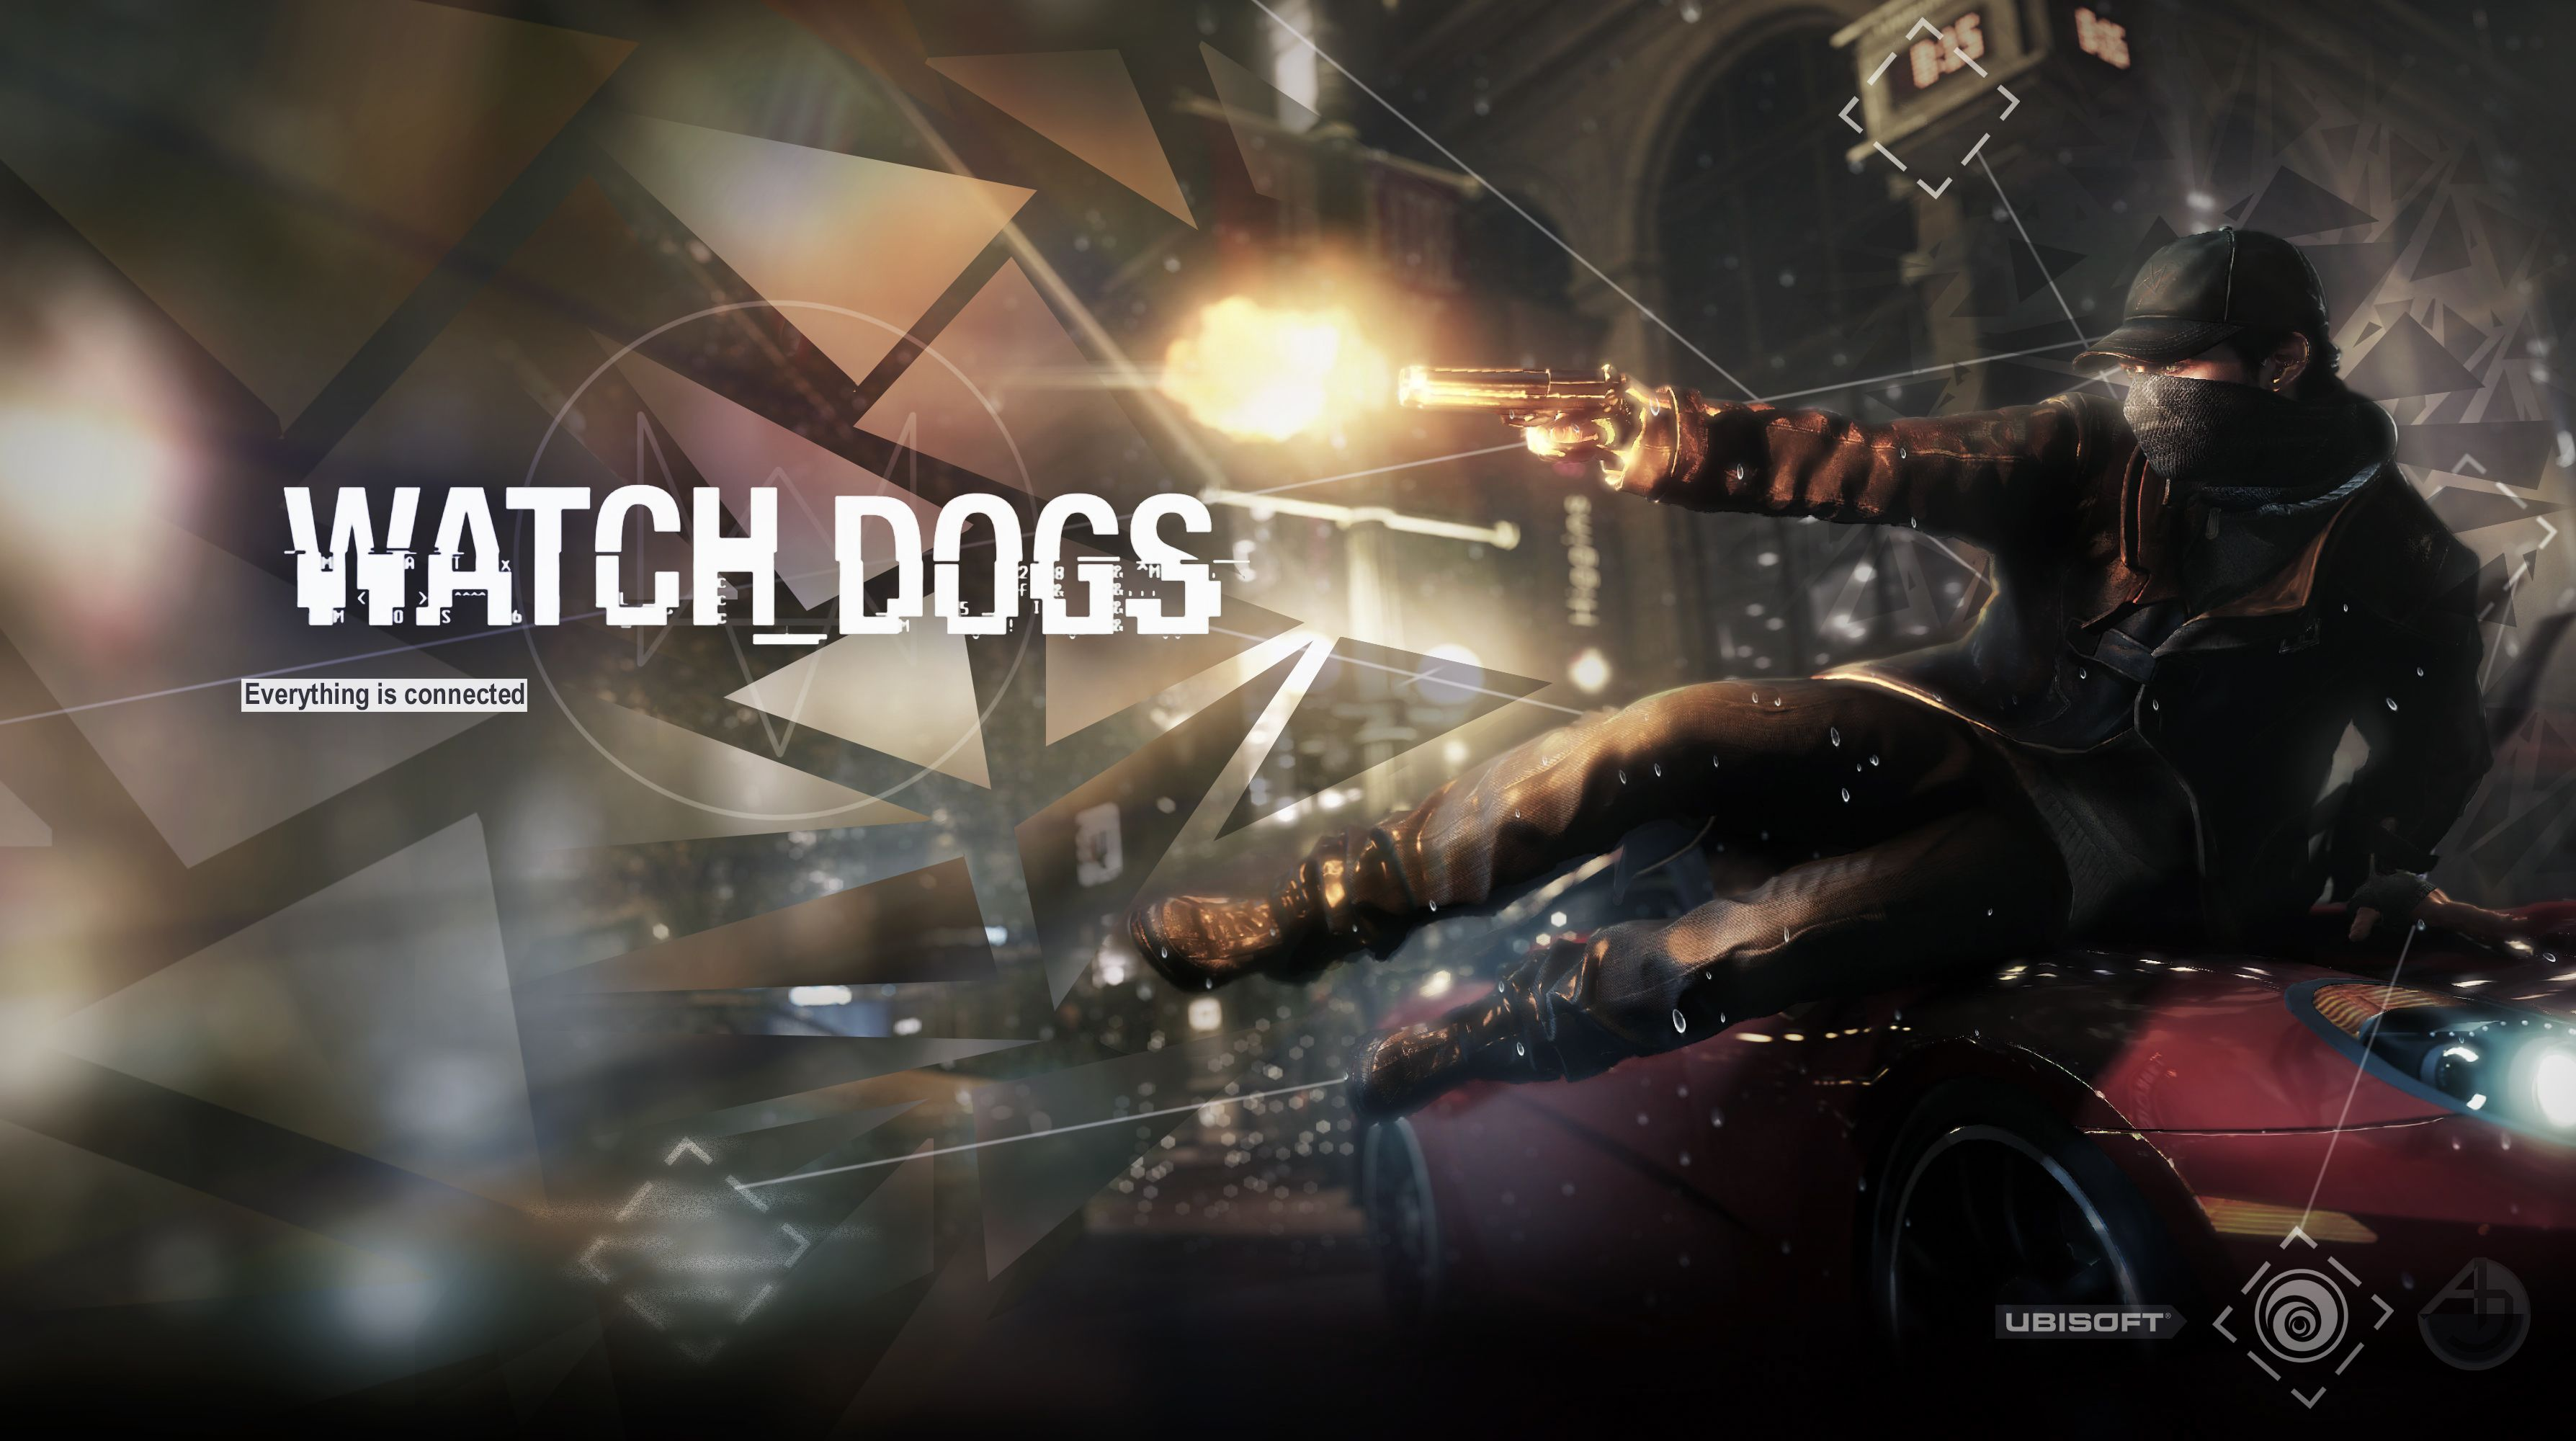 Aiden Pearce Watchdogs Hd Desktop Wallpaper Widescreen High